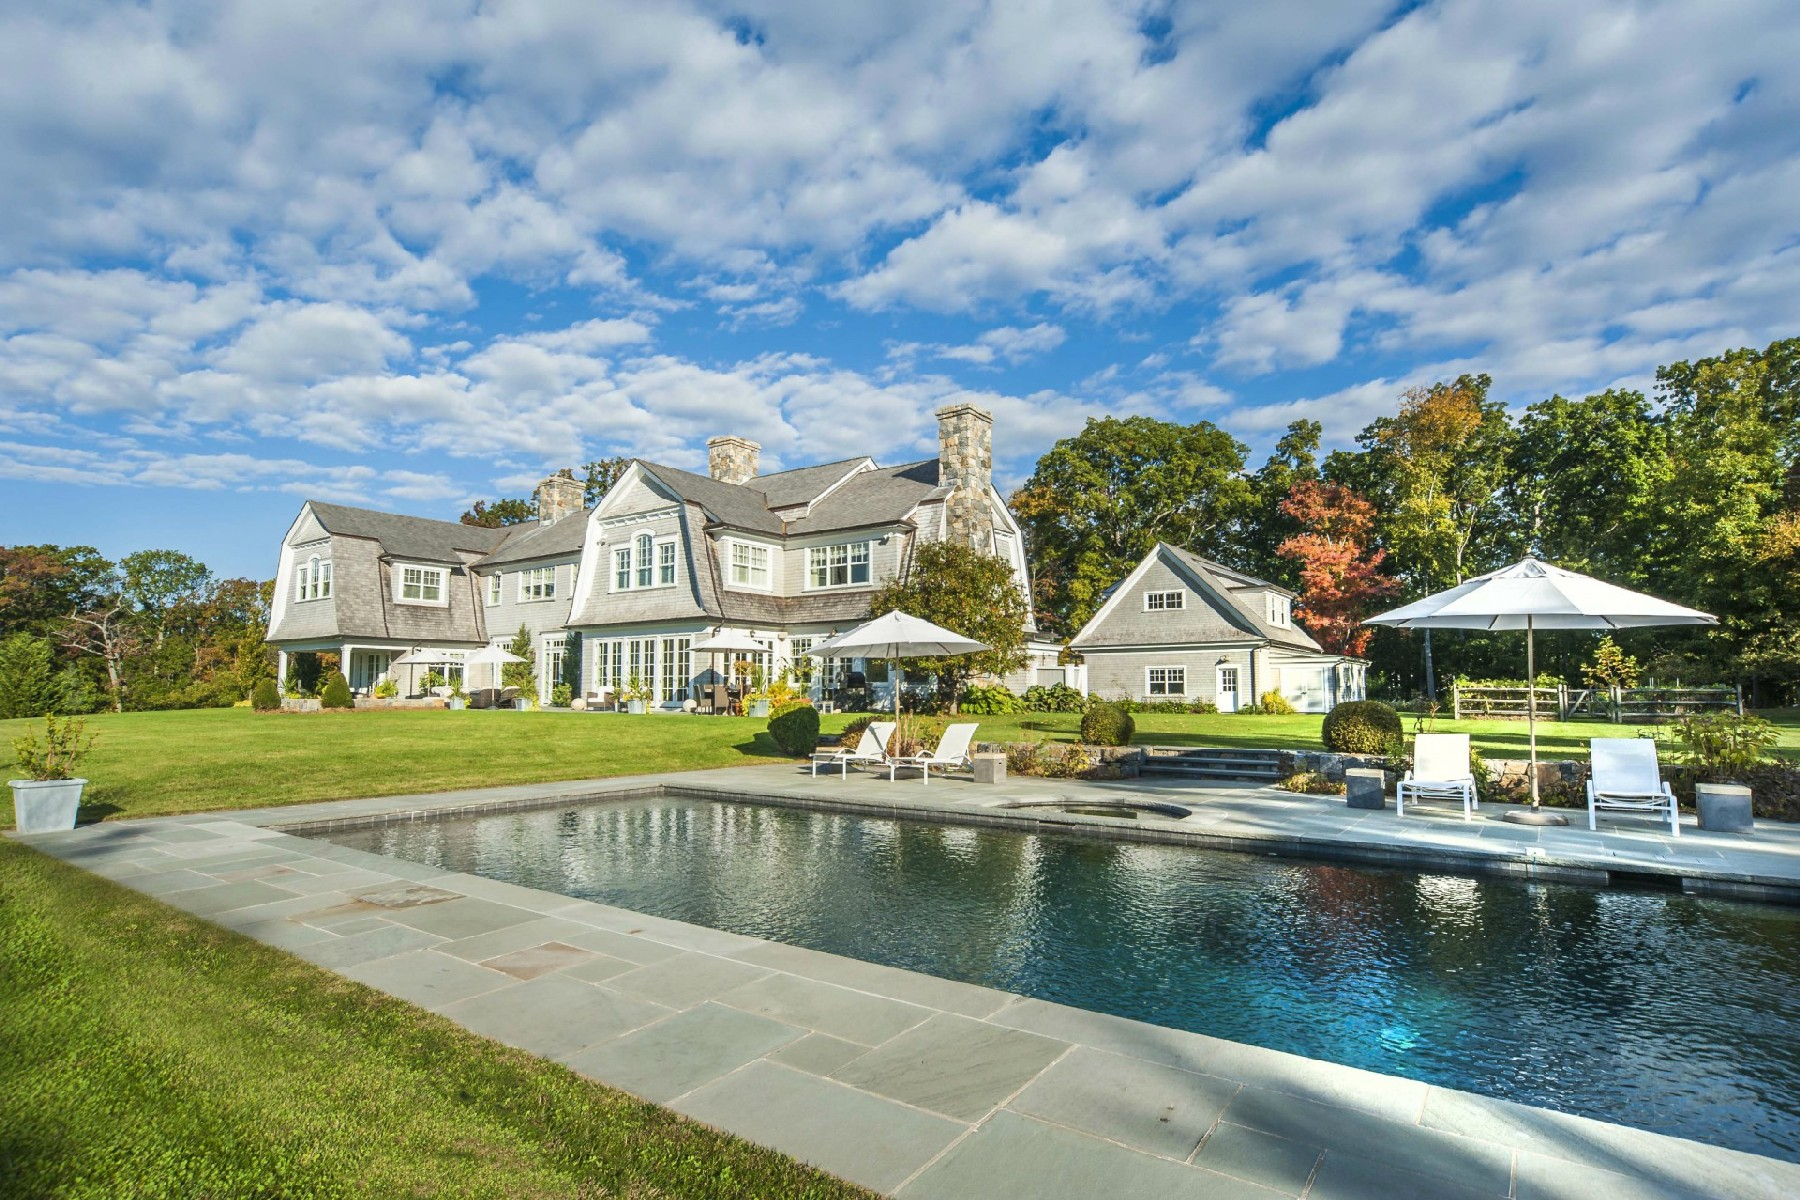 Casa Unifamiliar por un Venta en Magnificent Estate on 7.1 Acre Island 20 Juniper Road Darien, Connecticut 06820 Estados Unidos